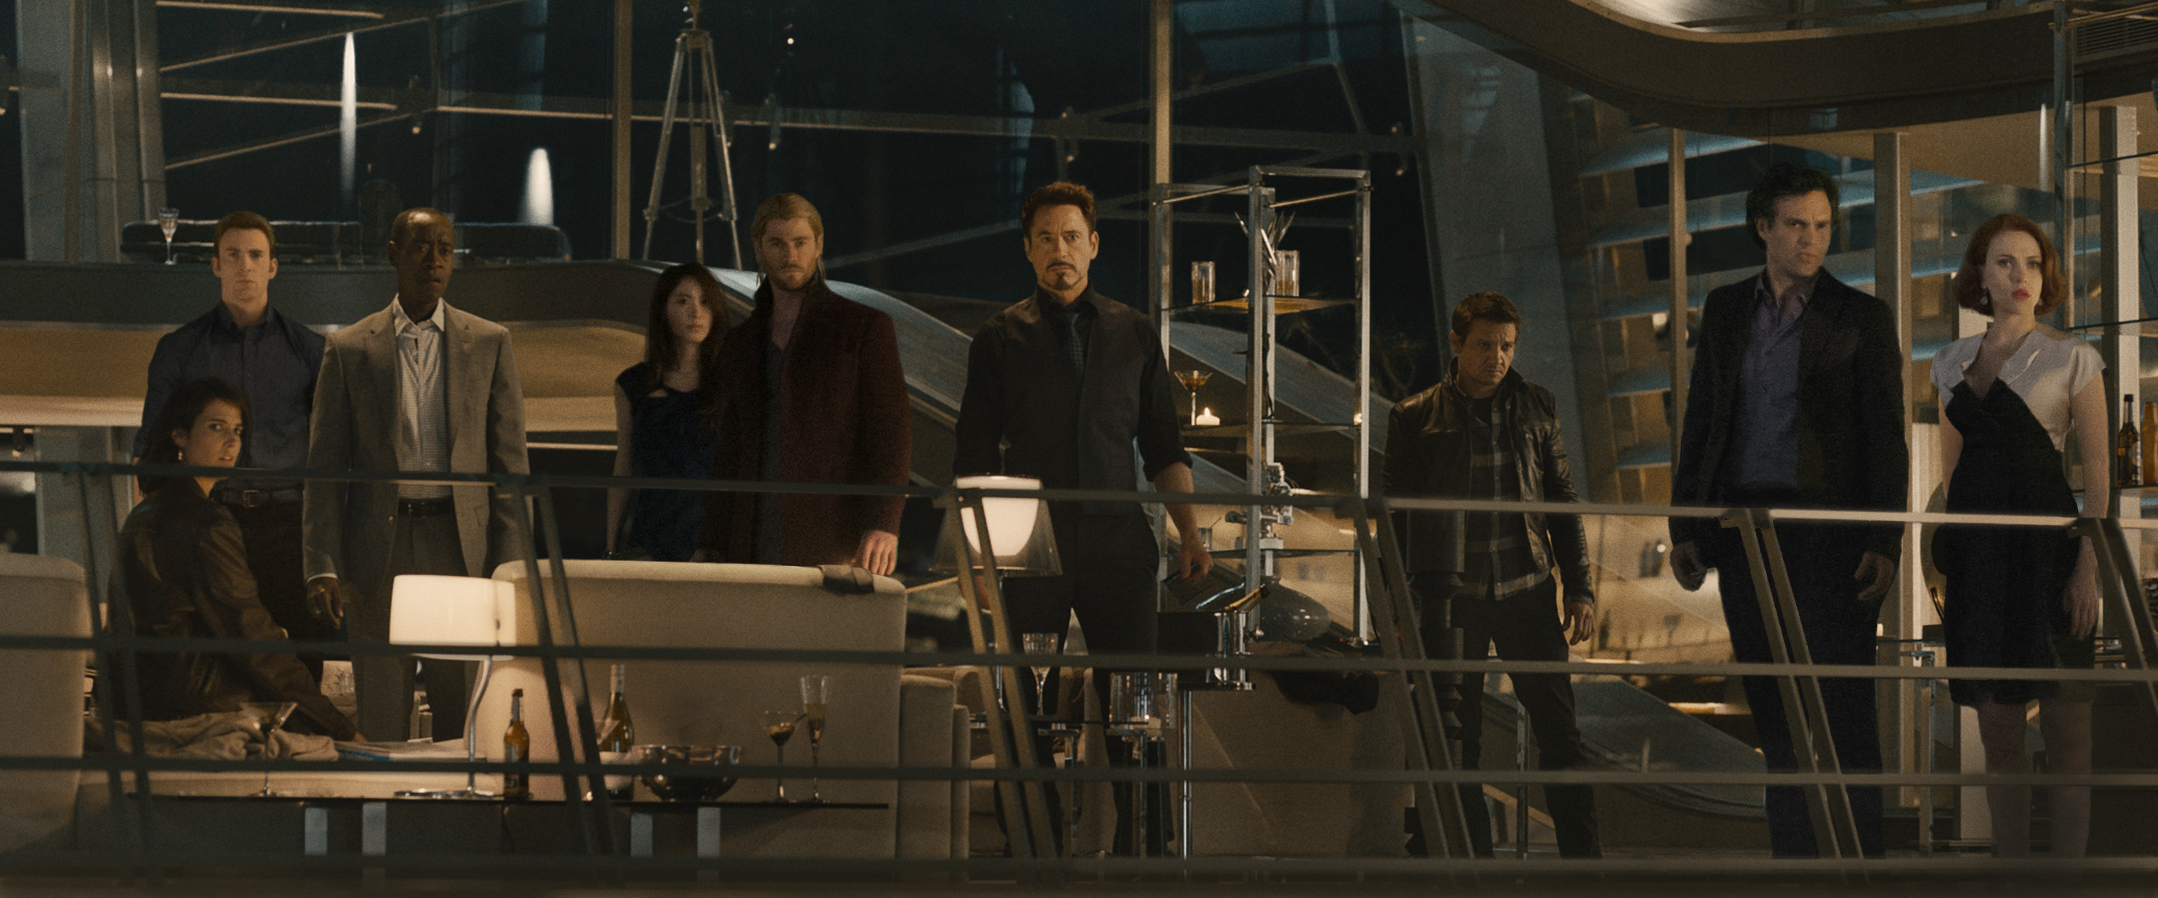 New AVENGERS: AGE OF ULTRON Team Photo and Promo Art